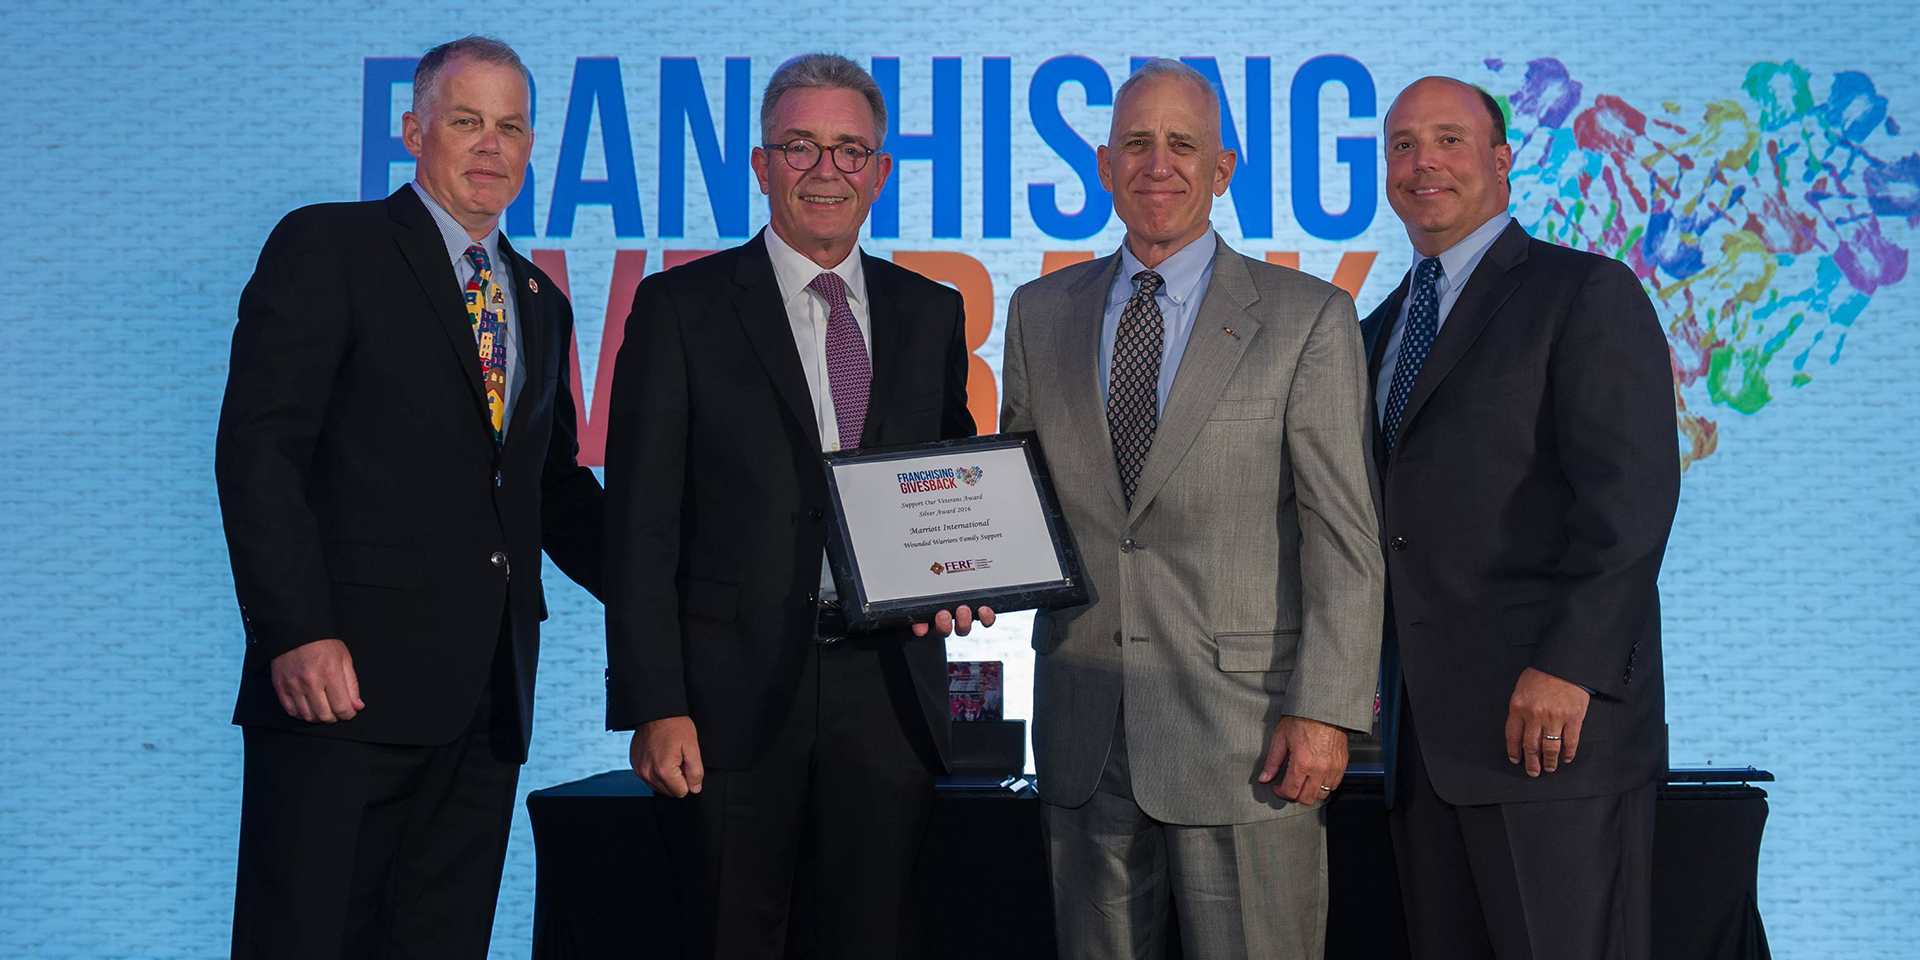 Left to right, Eric Stites, President, Franchise Business Review, Chairman, VetFran Committee, Liam Brown, Marriott International, Colonel John Folsom, Wounded Warriors Family Support, Steve Romaniello, Managing Director, Roark Capital Group, founding sponsor, Franchising Gives Back.